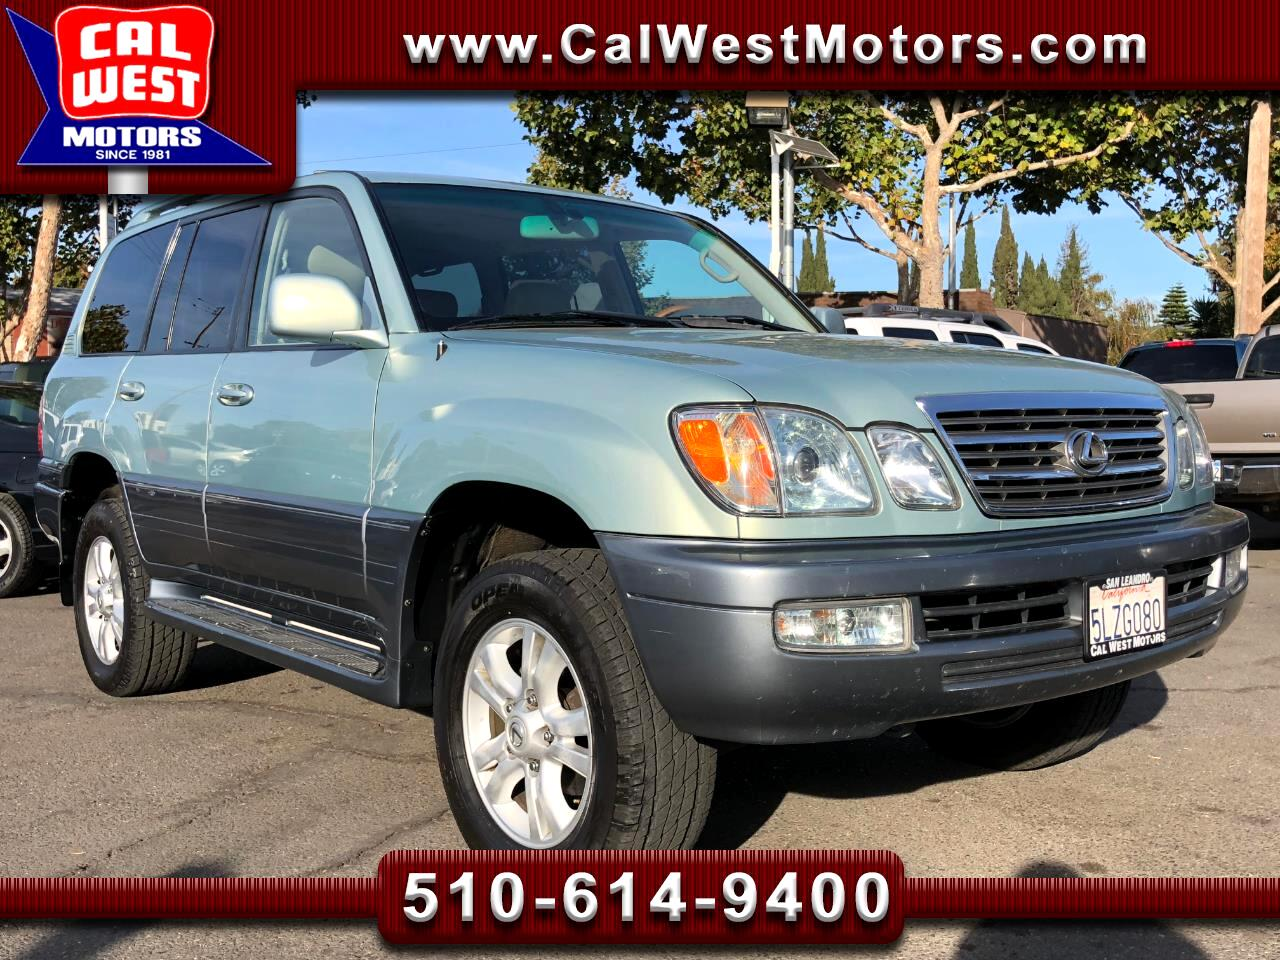 2005 Lexus LX 470 4X4 NAV Blu2th 3Rows 1Owner SuperClean